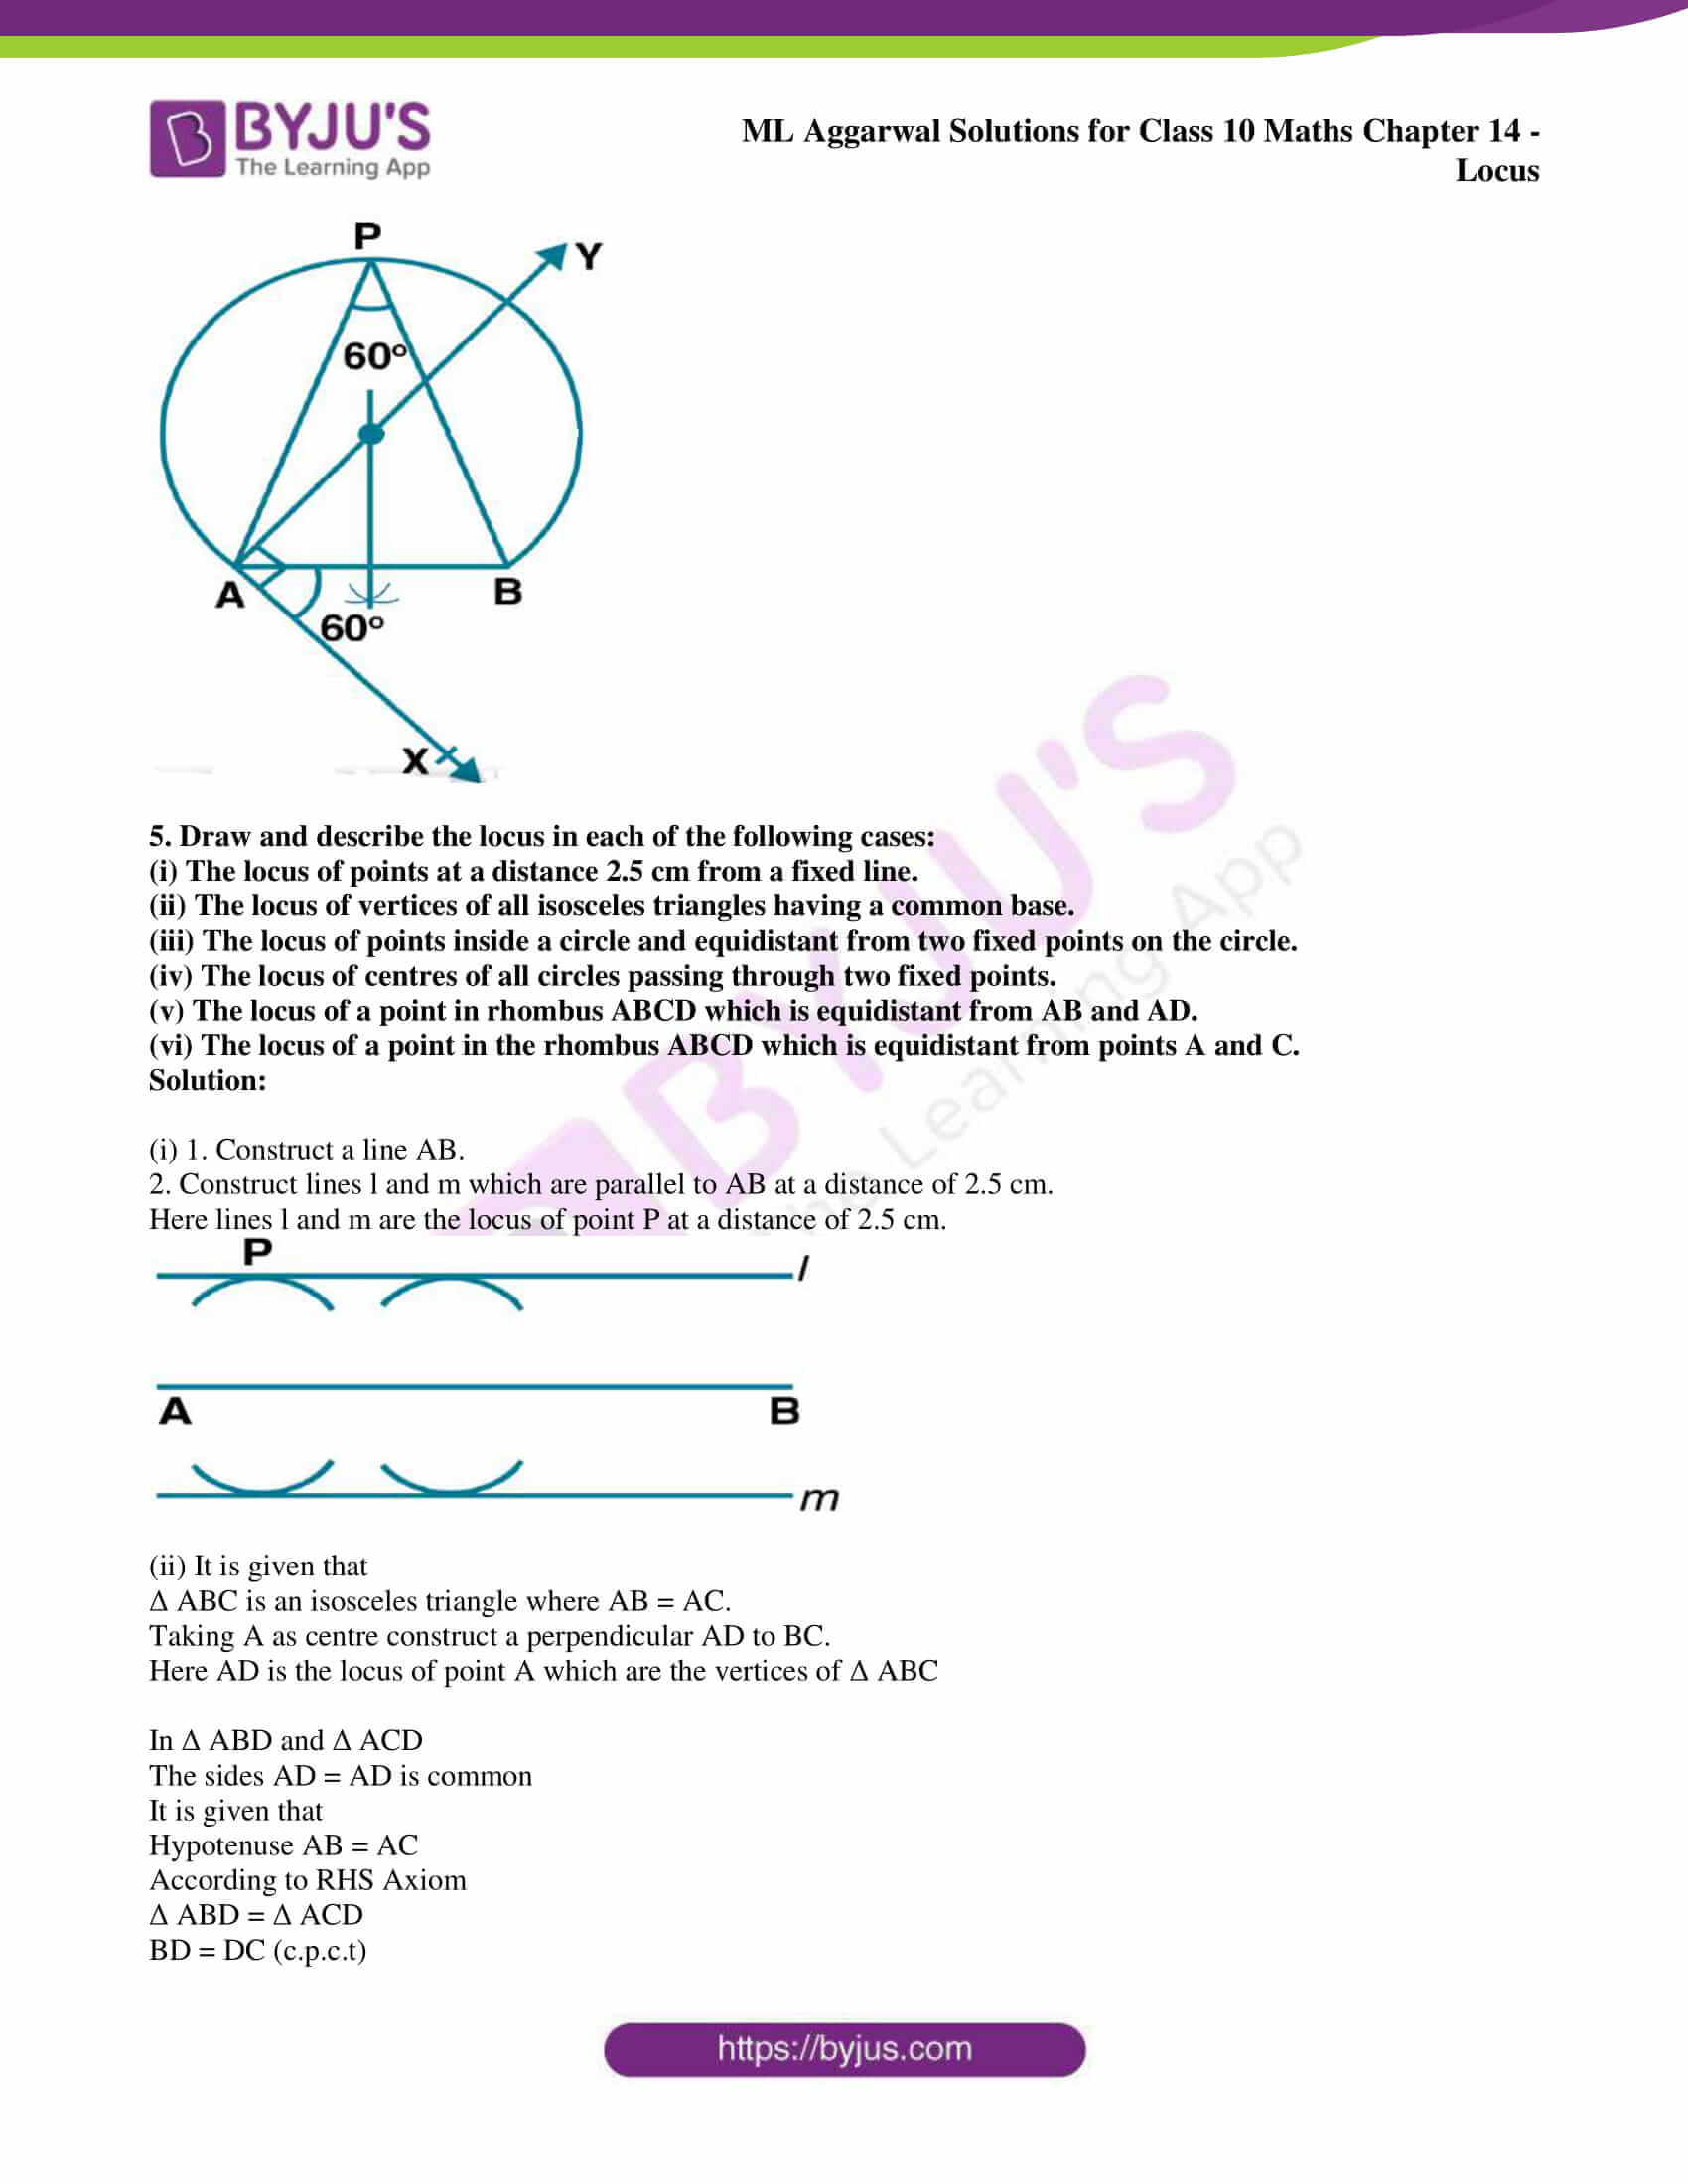 ml aggarwal solutions for class 10 maths chapter 14 03